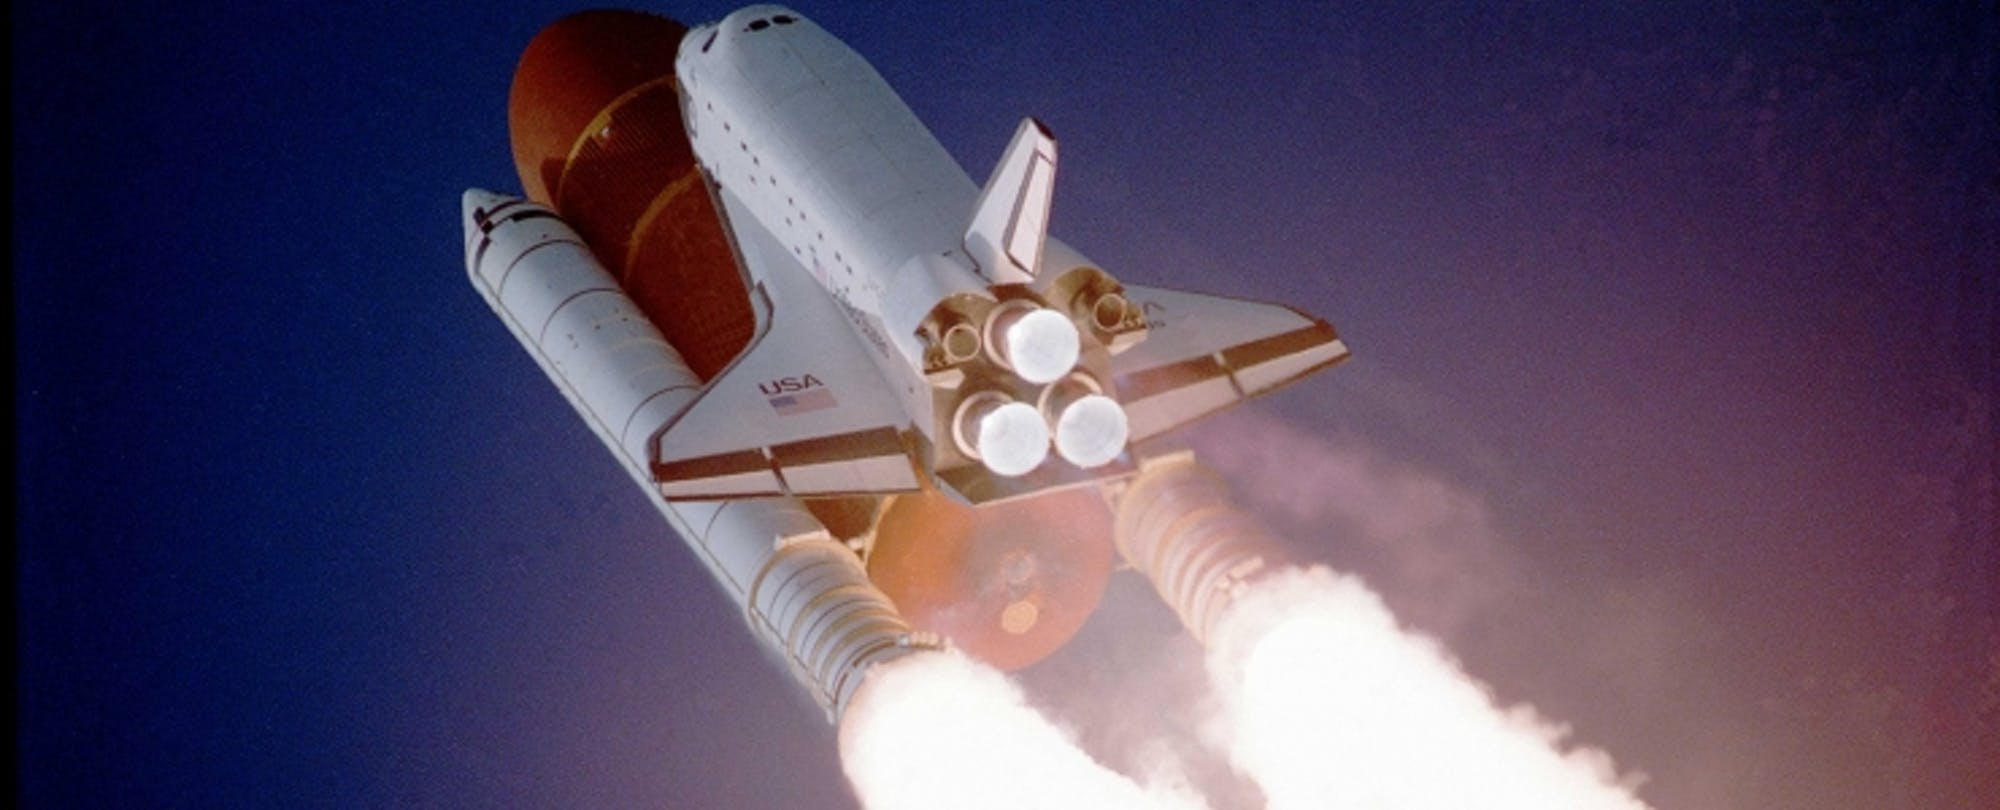 Rocketship's Growth and Pain: A Test for Edtech